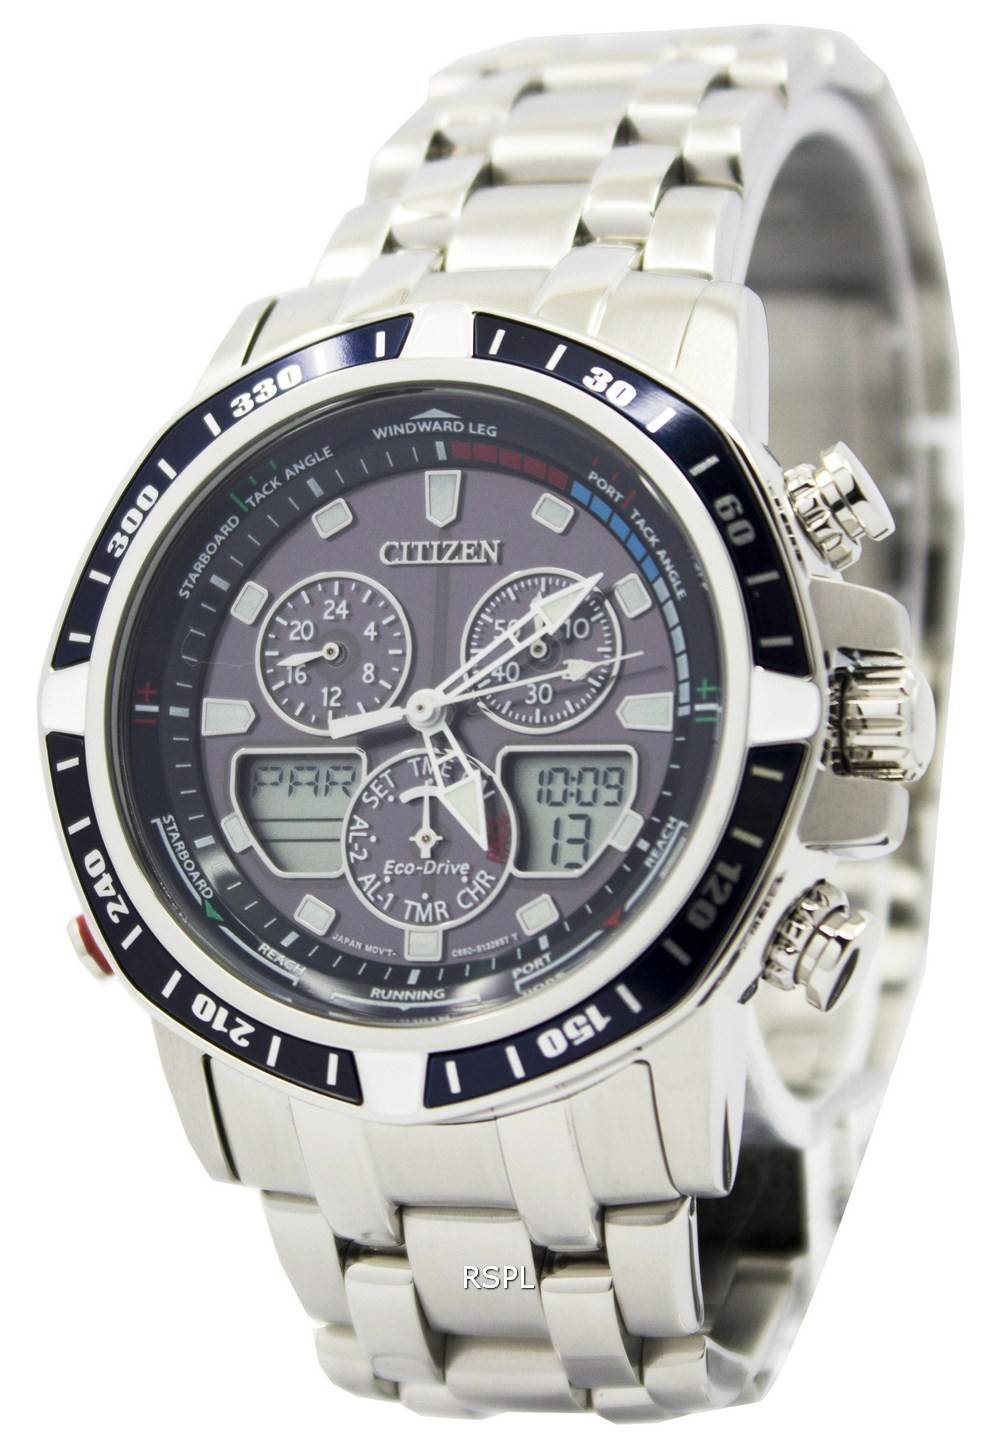 We have 90 orient watch usa coupons for you to consider including 90 promo codes and 0 deals in December Grab a free hitmgd.tk coupons and save money. Orient Watch is a manufacturer of quality automatic watches.5/5(1).